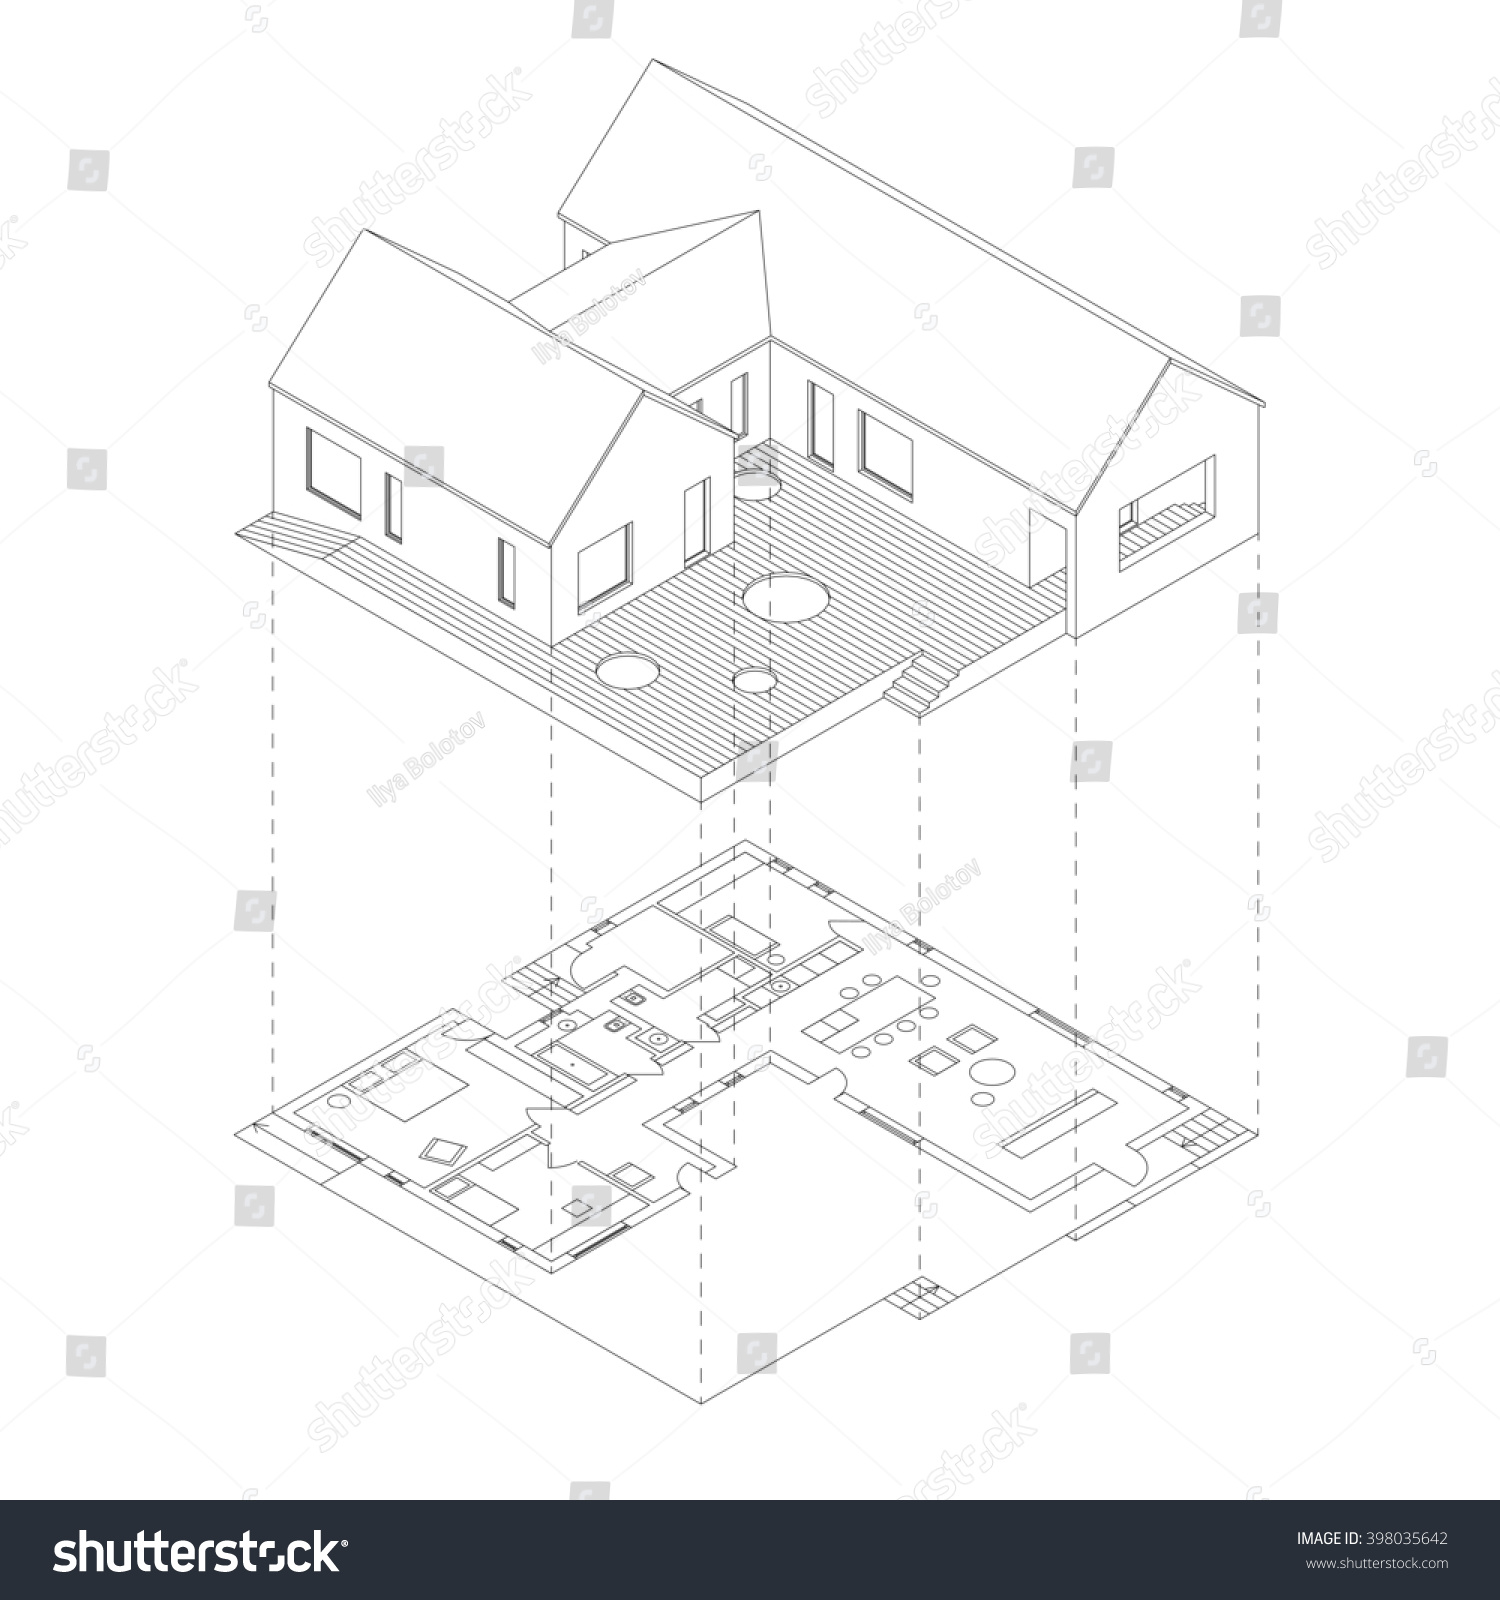 House Plan Projection On White Background Stock Illustration 398035642